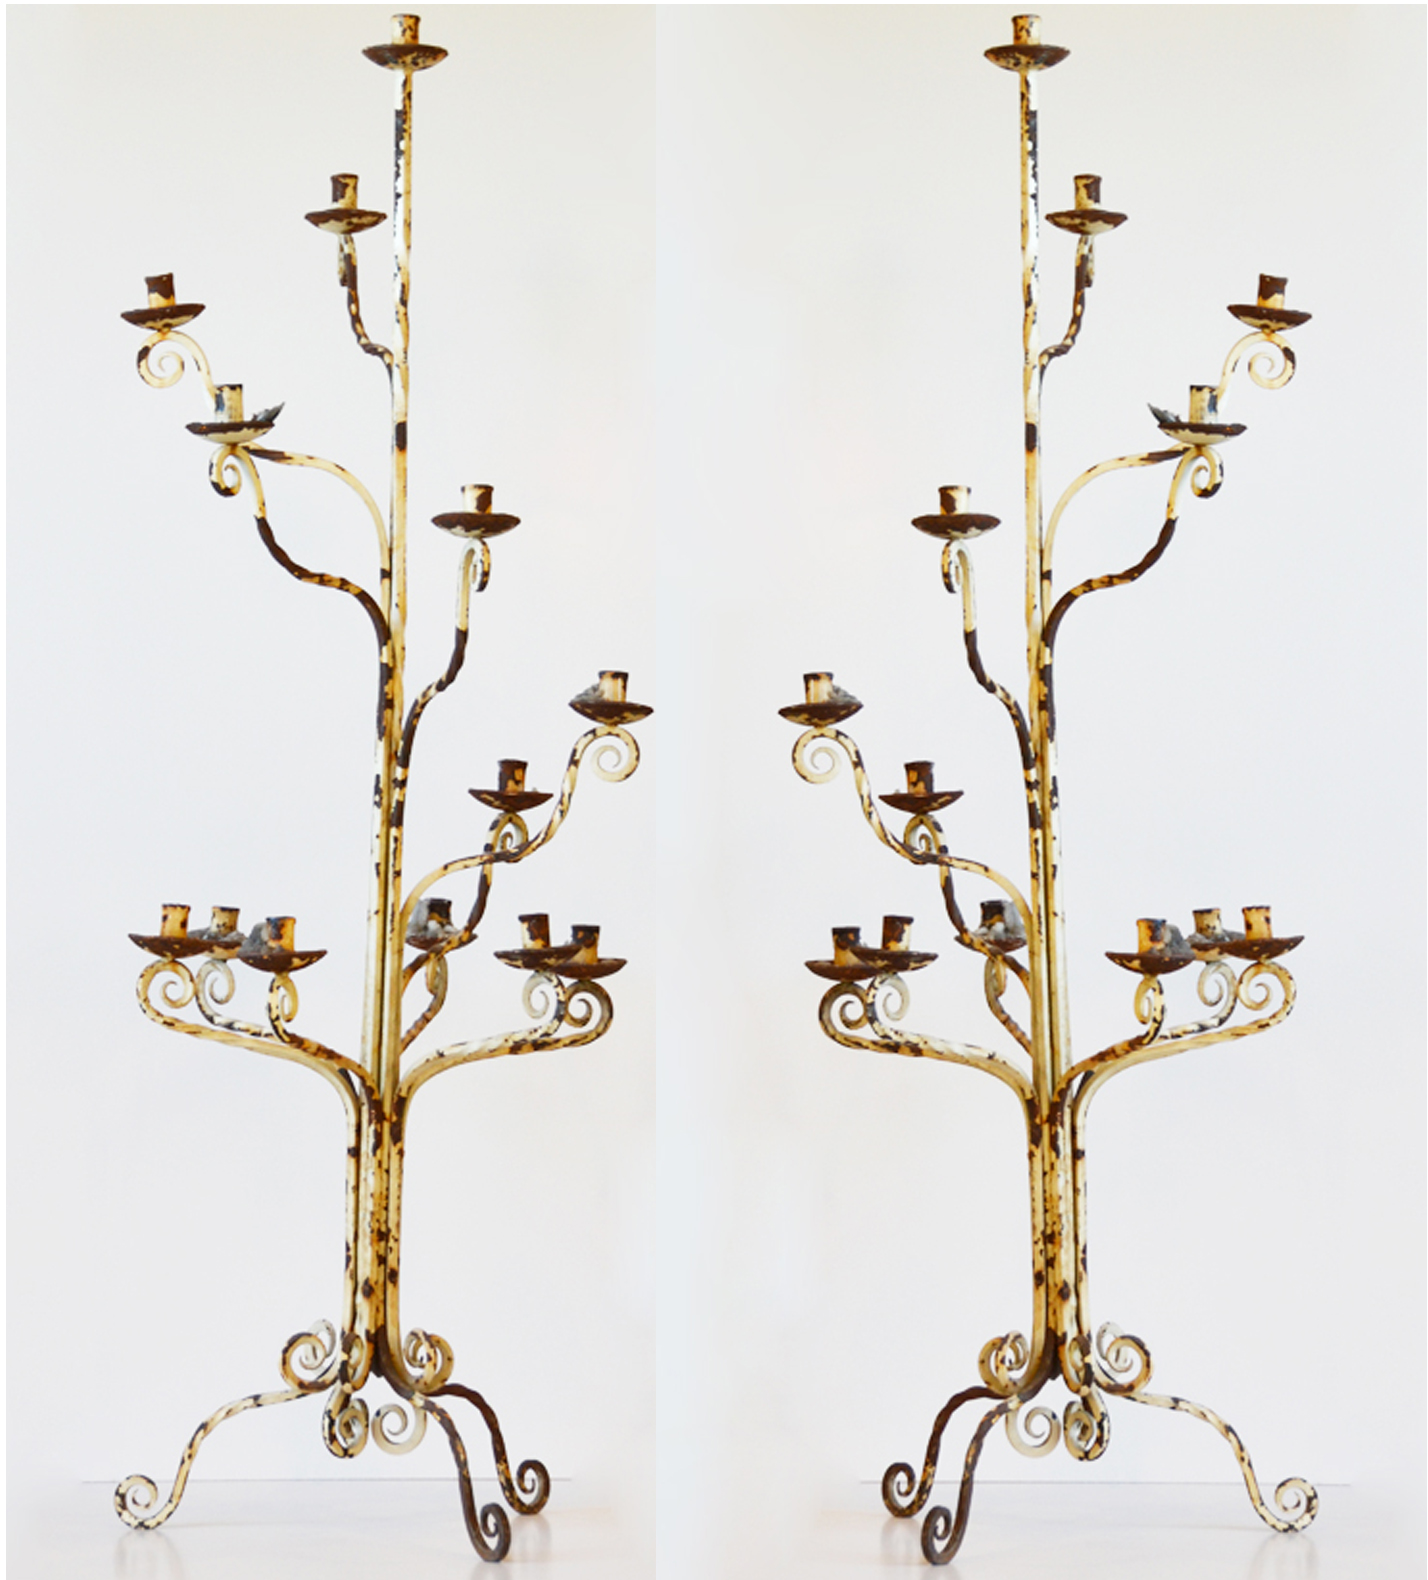 Pair Early 1800s Hand Forged Wrought Iron Floor Candelabras